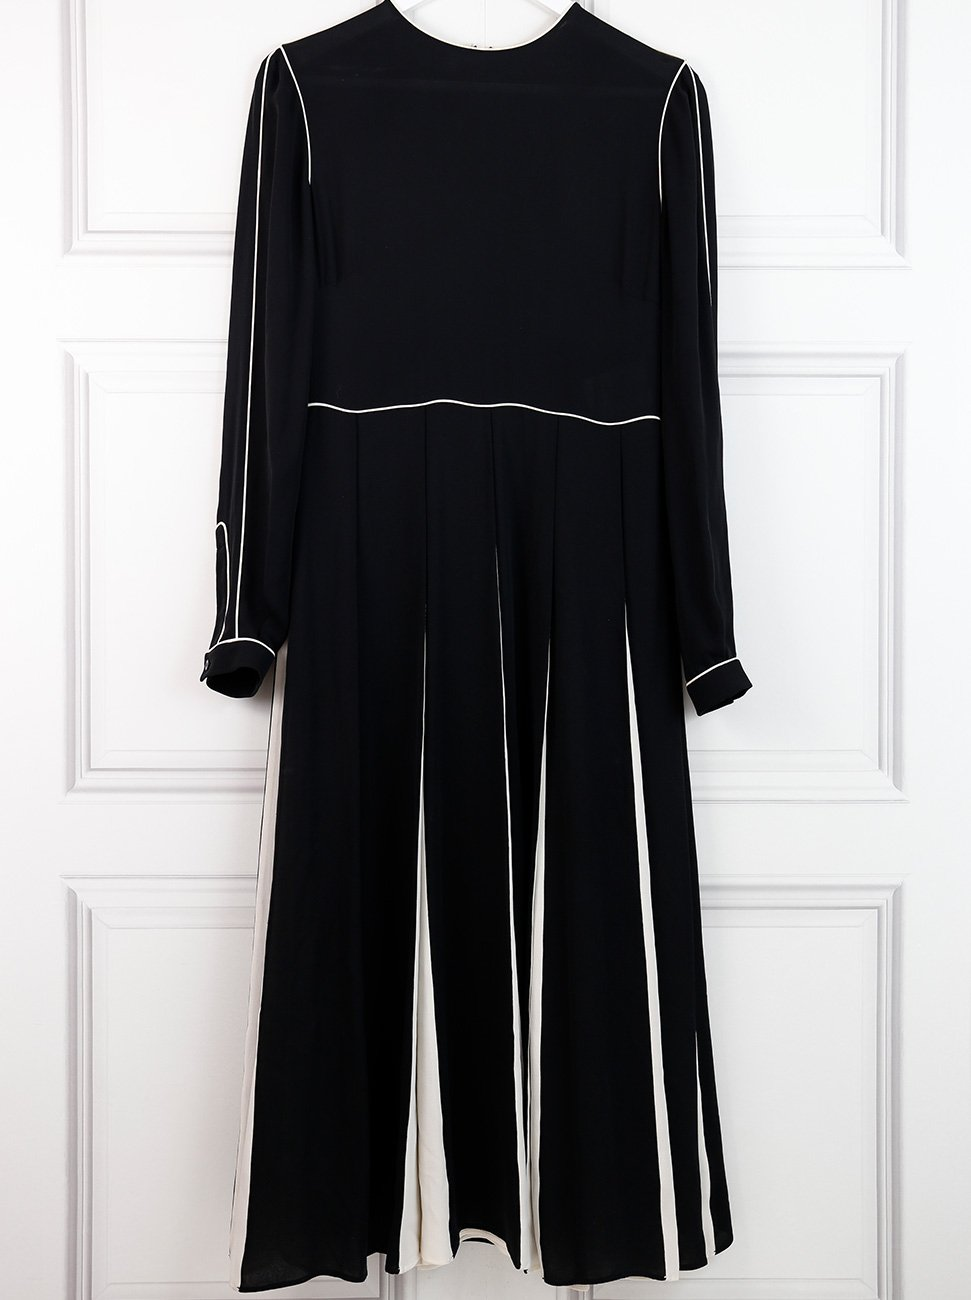 Valentino black monochrome pleated midi dress 10UK- My Wardrobe Mistakes